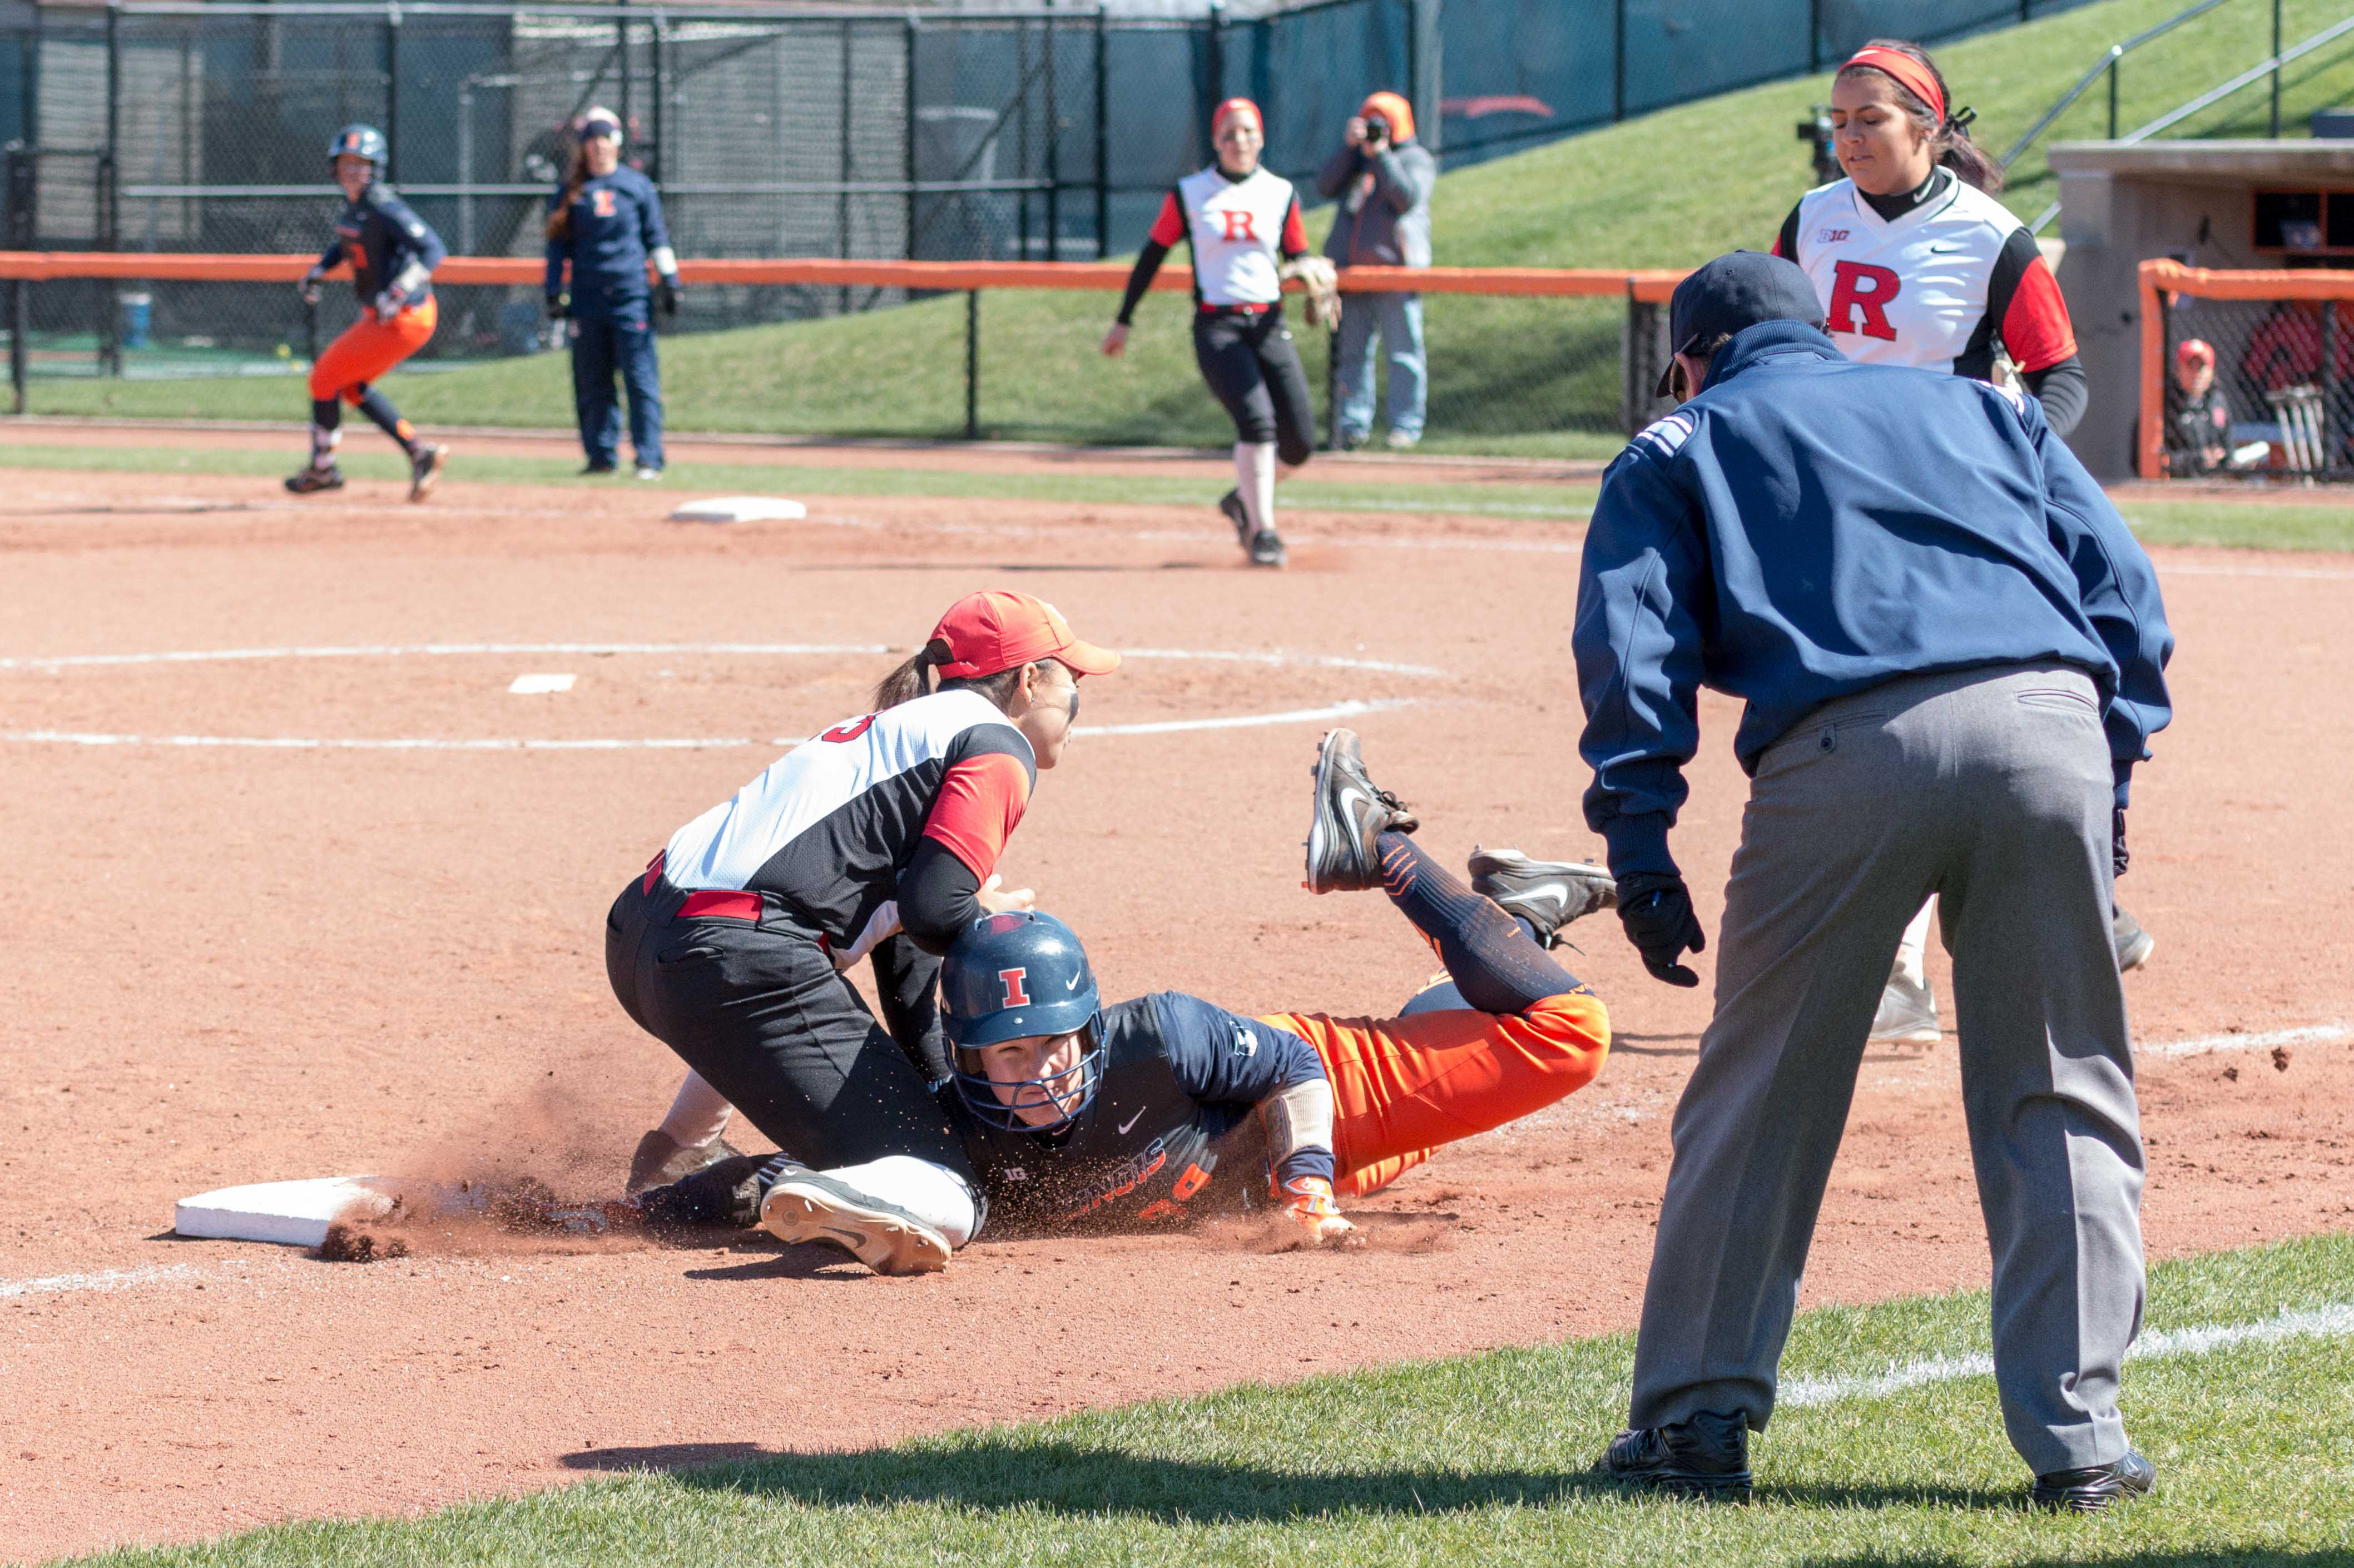 Illinois' Annie Fleming dives back to third during a game against Nebraska at Eichelberger Field on April 2. Fleming had a strong performance the last time the Illini played at ISU.